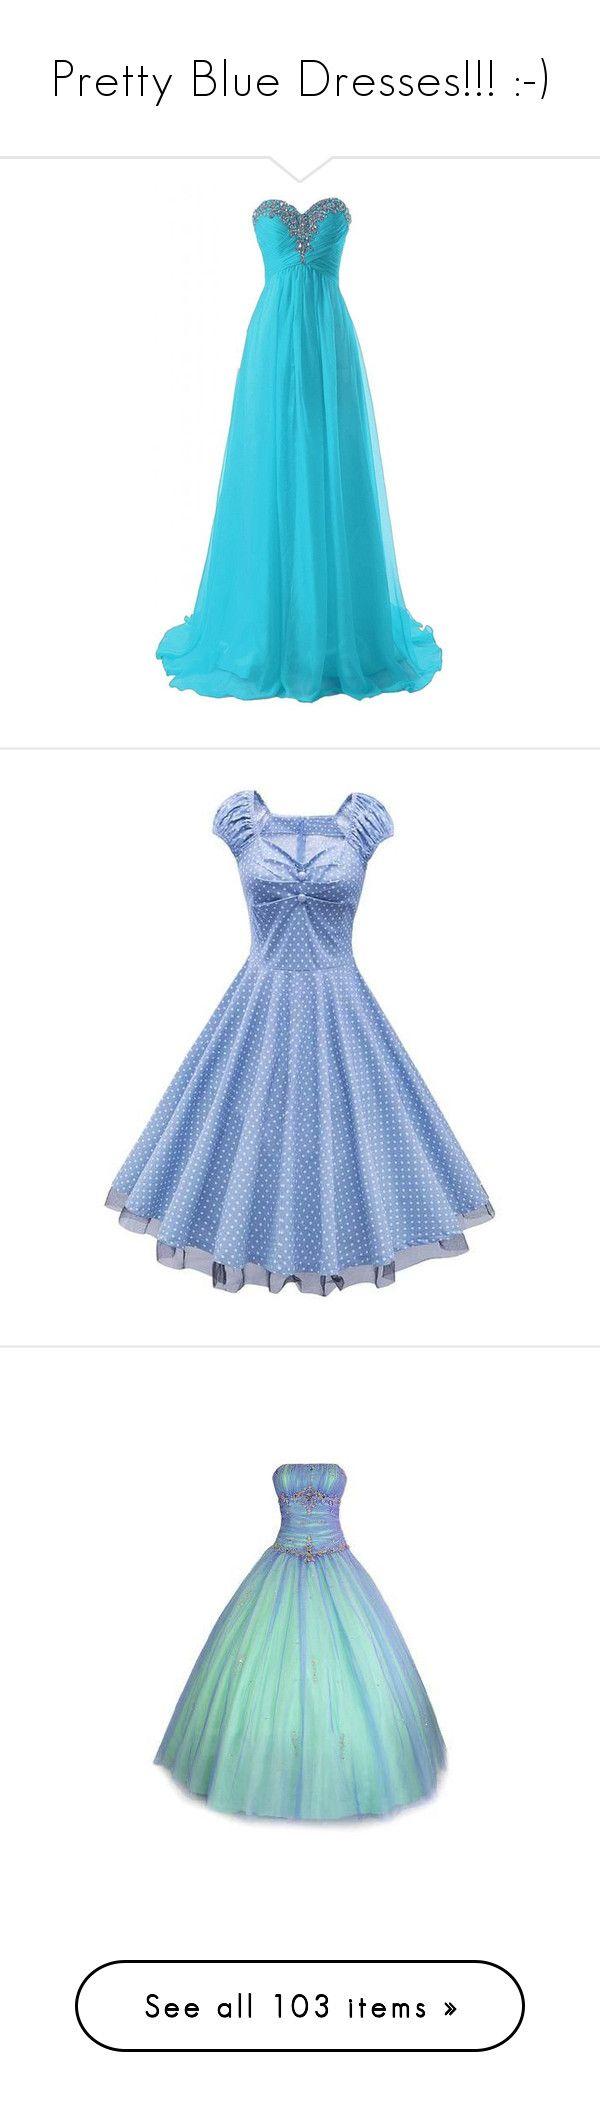 """Pretty Blue Dresses!!! :-)"" by vahrendsen1988 ❤ liked on Polyvore featuring dresses, rosegal, blue dot dress, polka dot dress, cap sleeve cocktail dress, blue party dress, cocktail party dress, gowns, green prom dresses and green formal dresses"